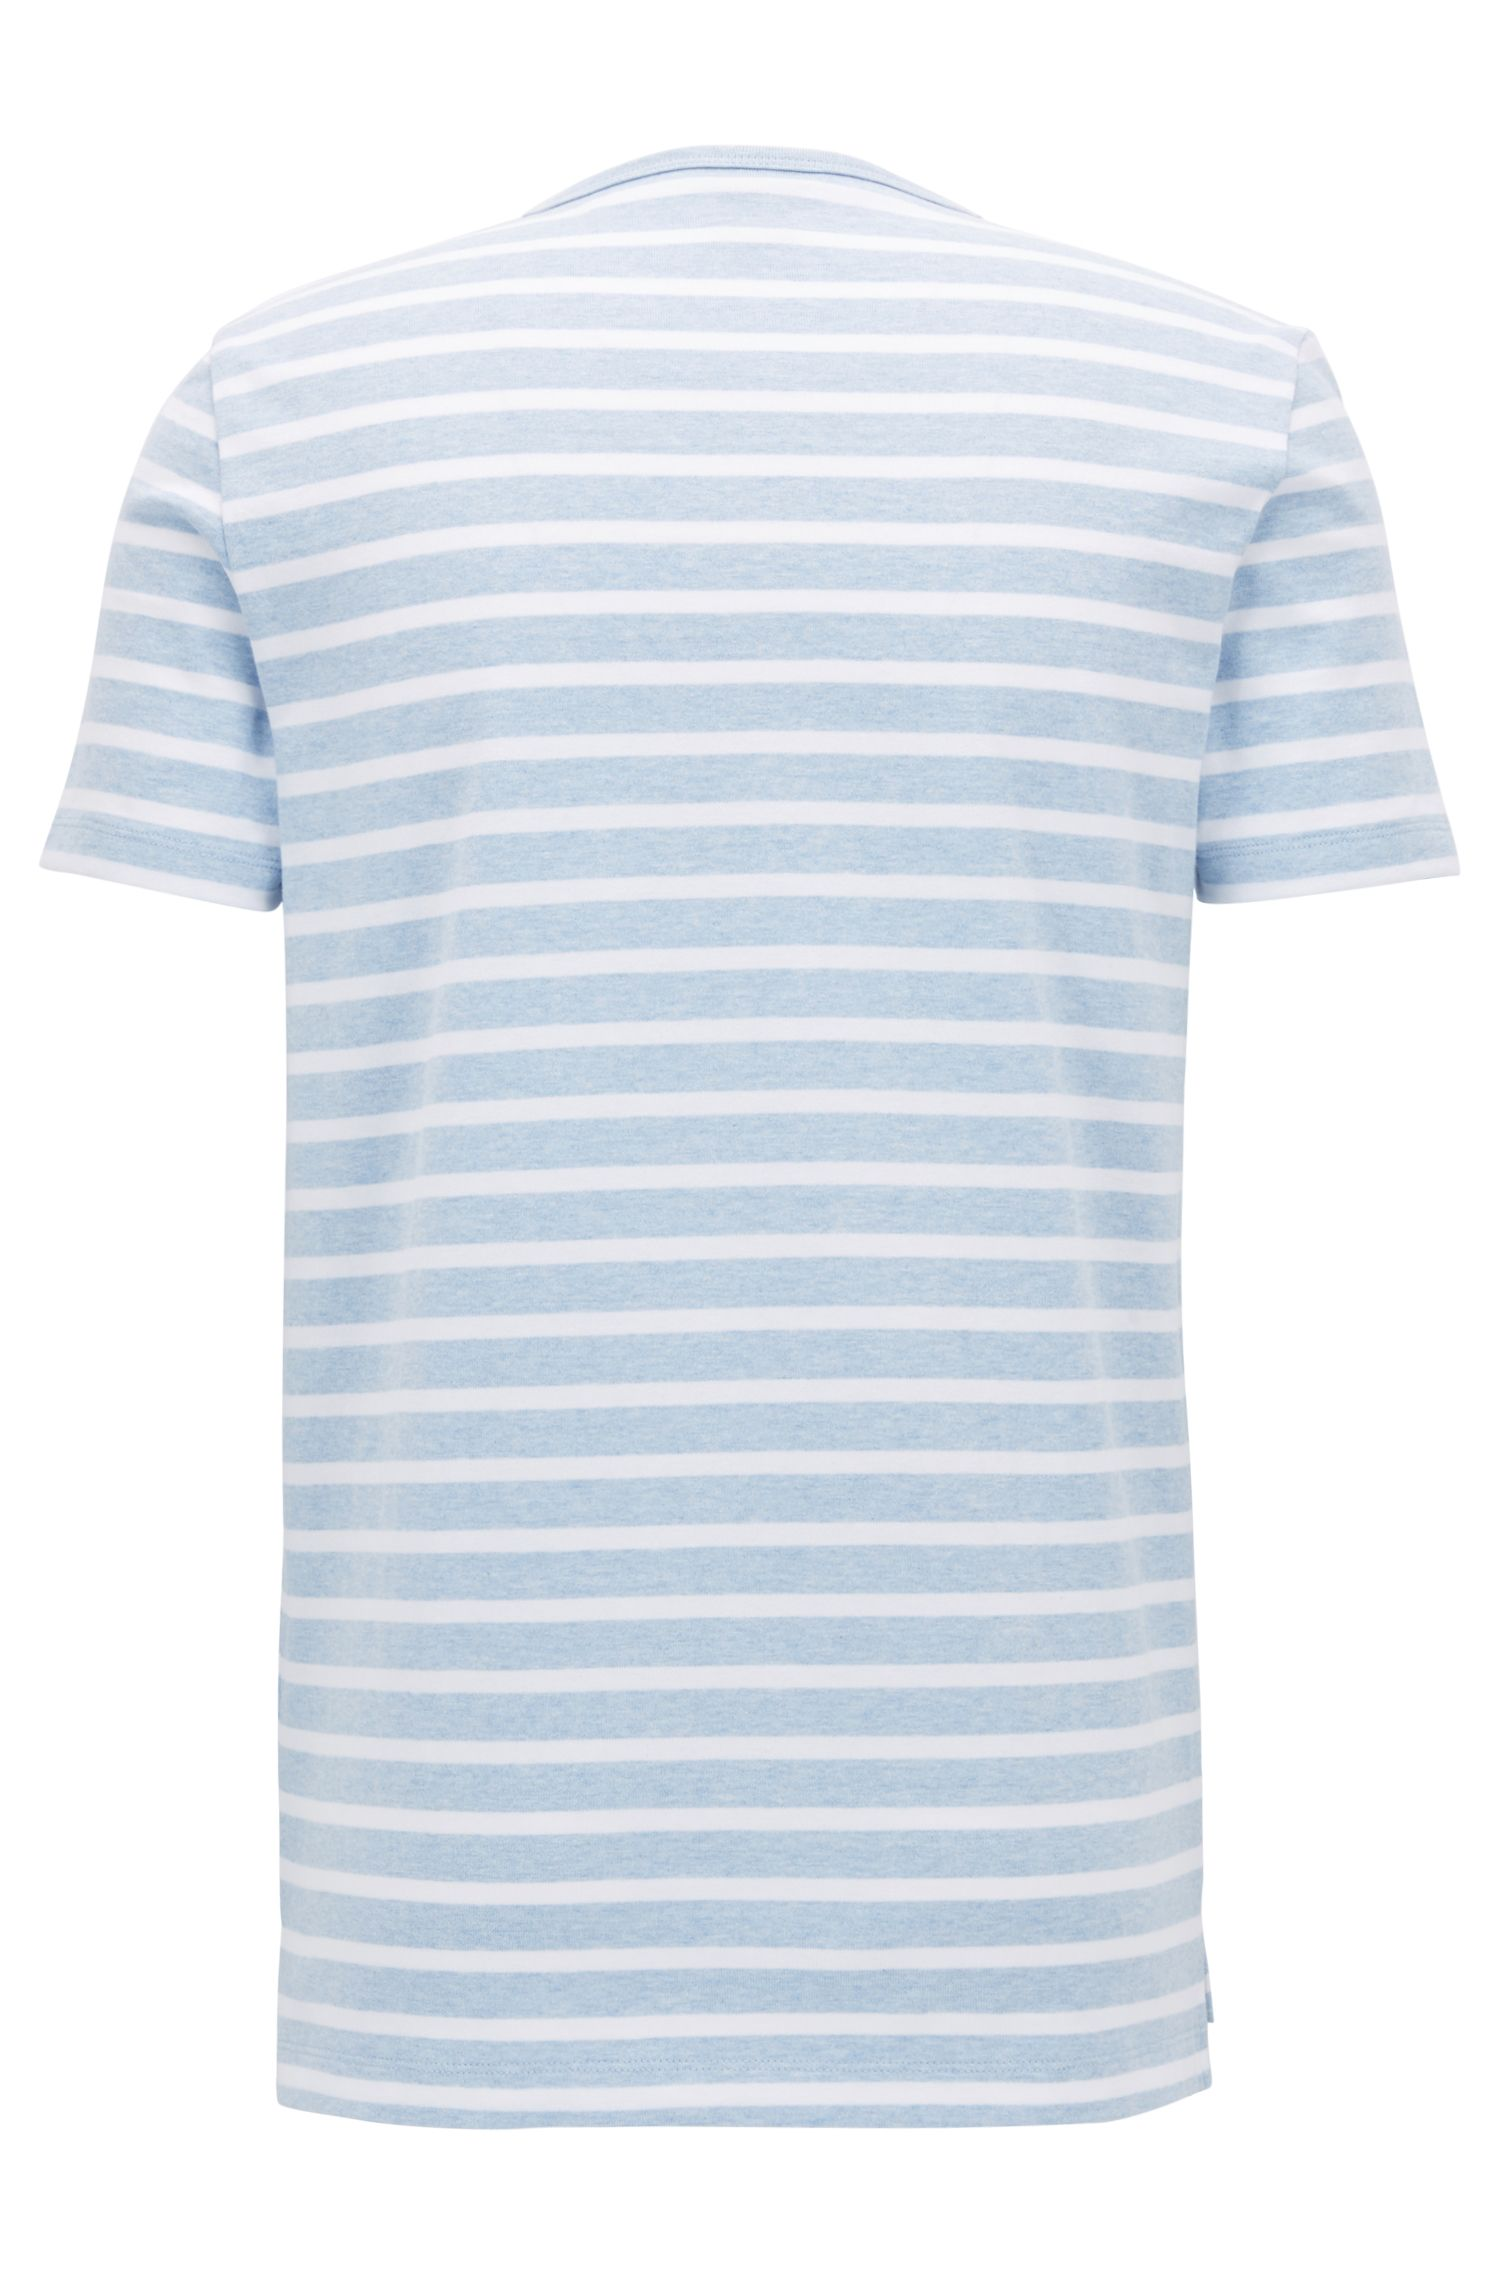 Striped crew-neck T-shirt in compact cotton